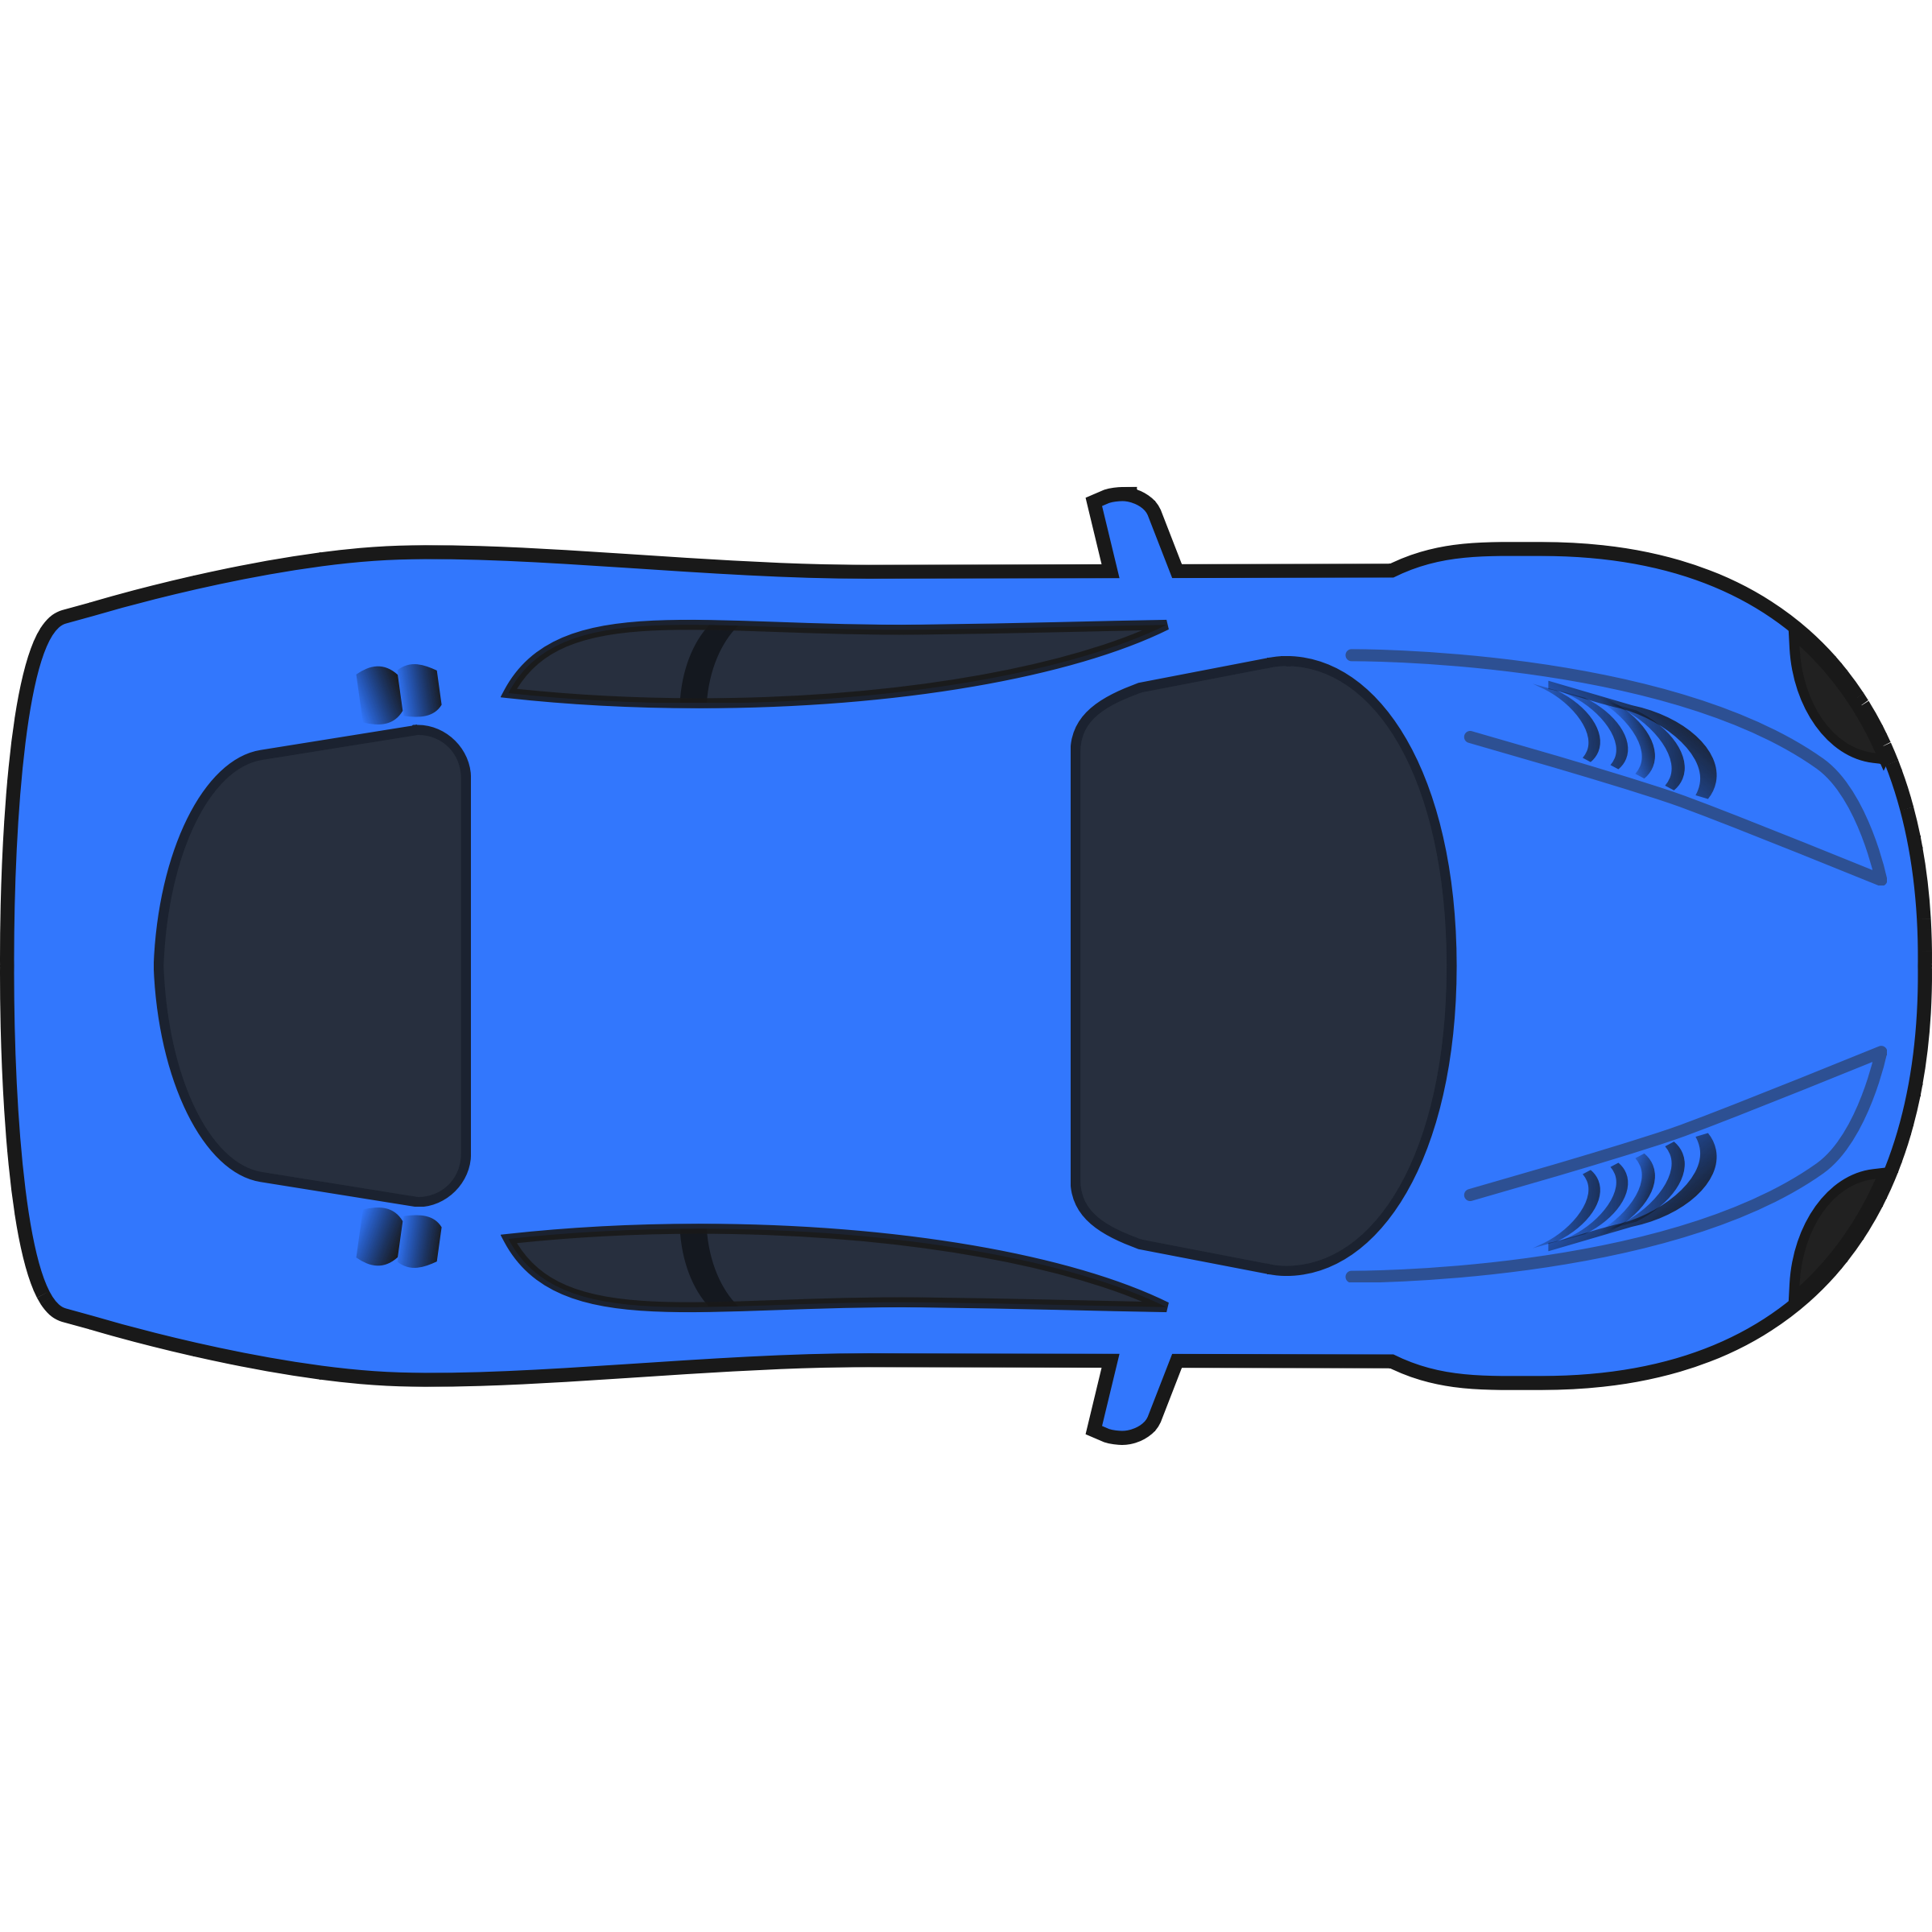 Aerial View Of Car Clipart.